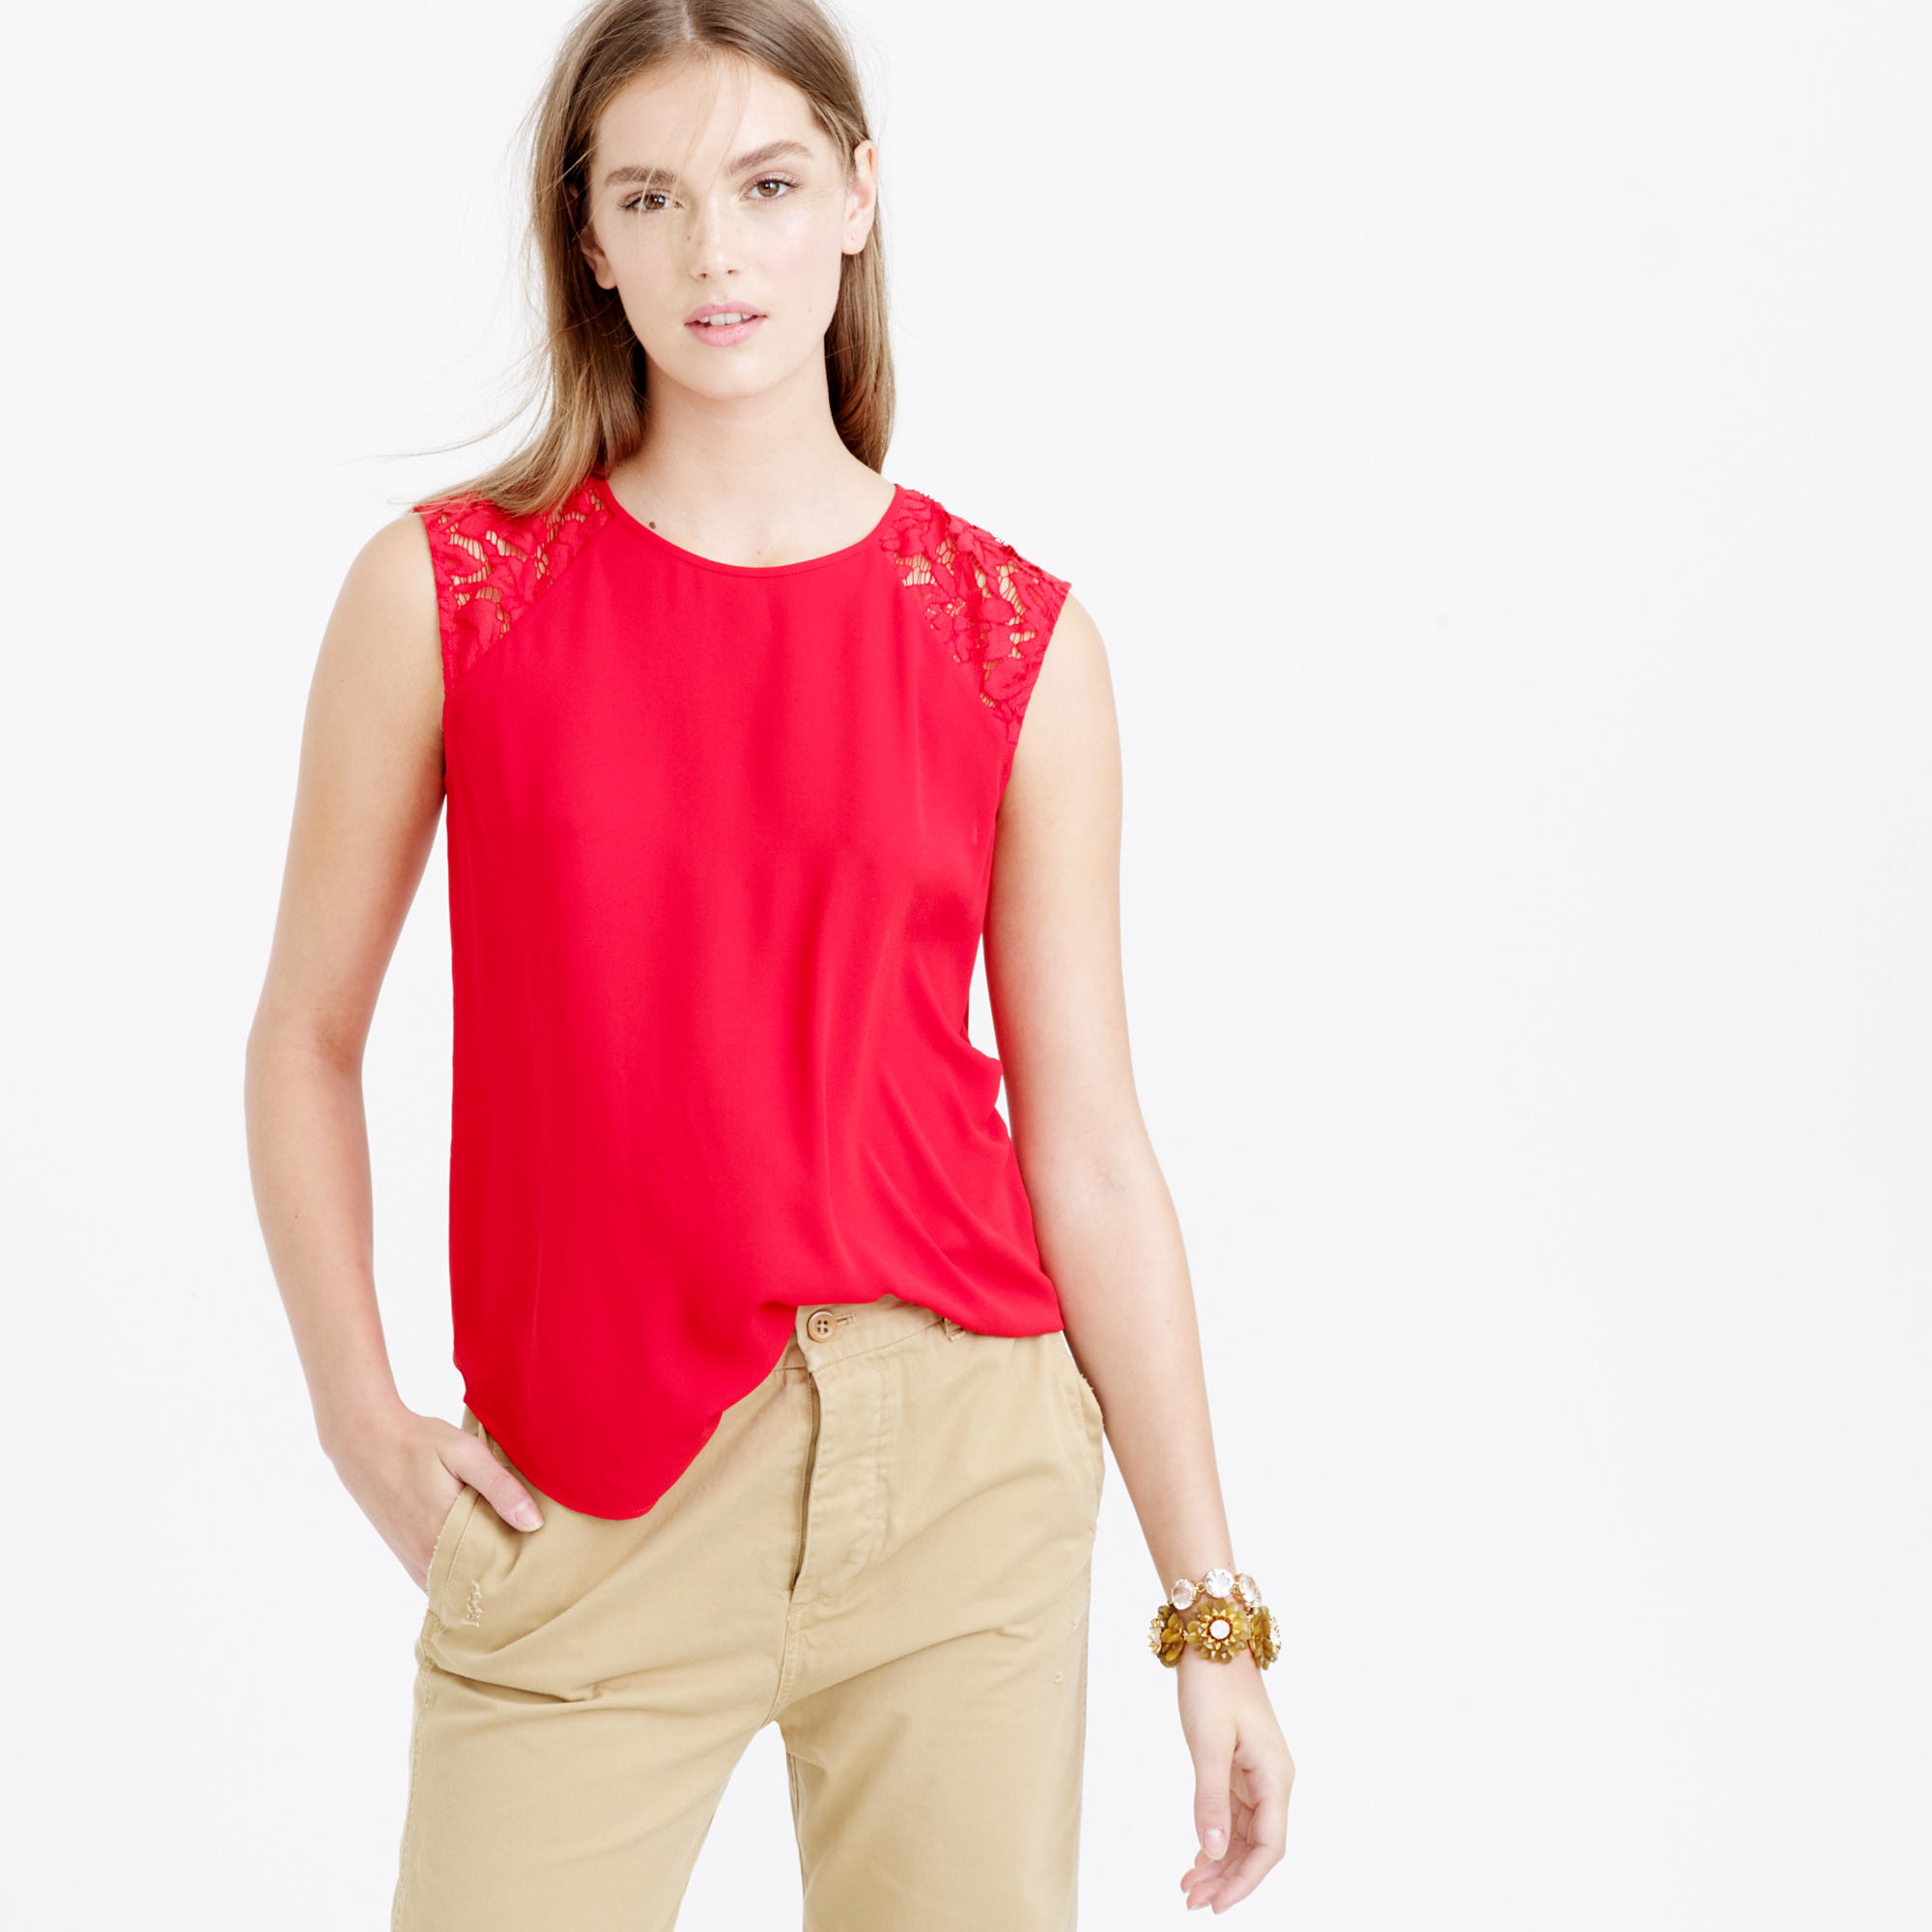 cd659b69df8 Lyst - J.Crew Petite Floral Lace-shoulder Top in Red